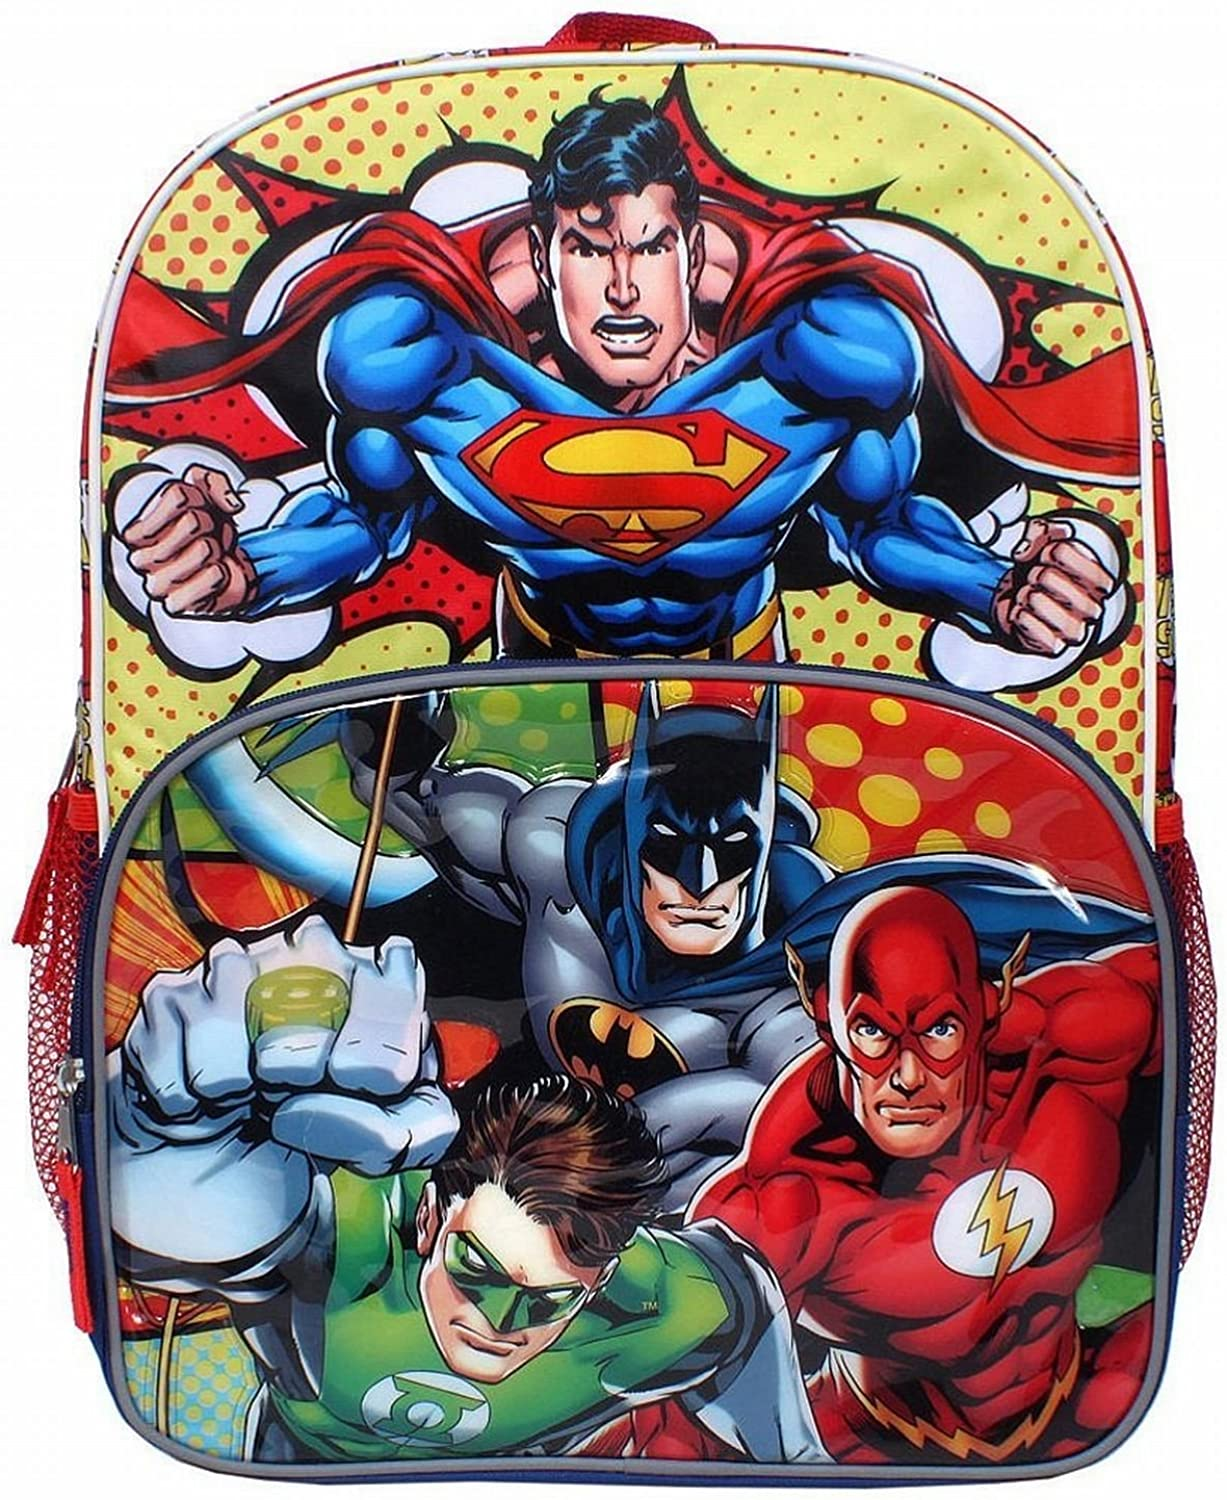 DC Comics Justice League Superman, Batman, Flash and The Green Lantern 16 inch Backpack with Side Mesh Pockets